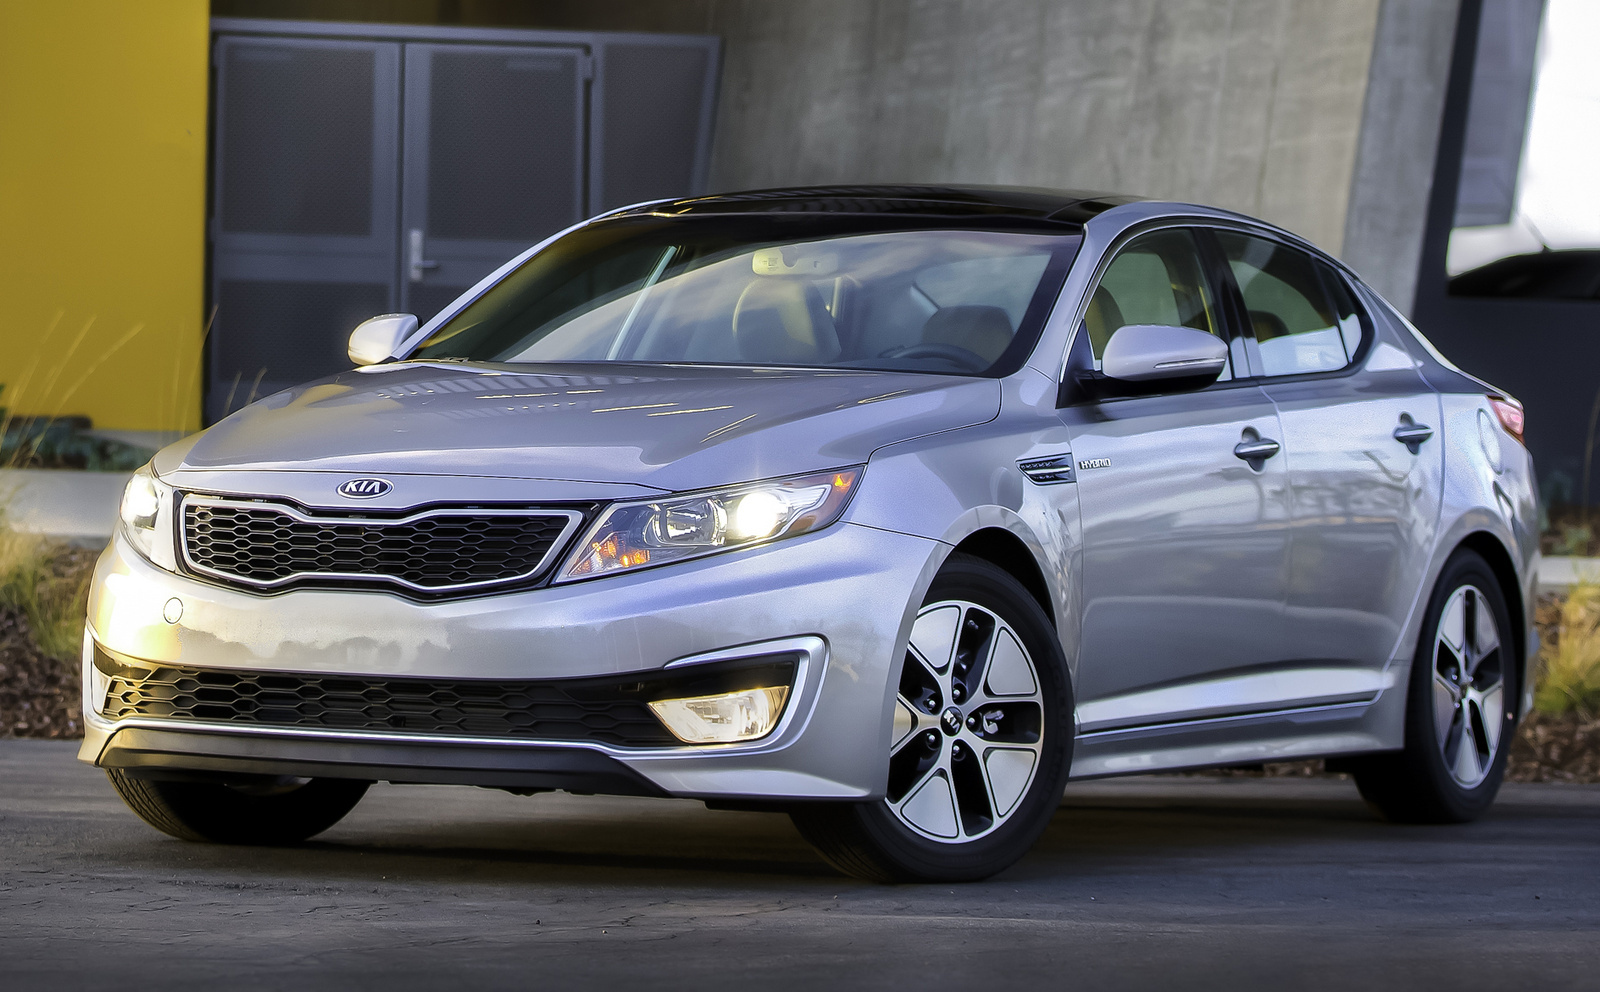 2014 Kia Optima Hybrid - Review - CarGurus